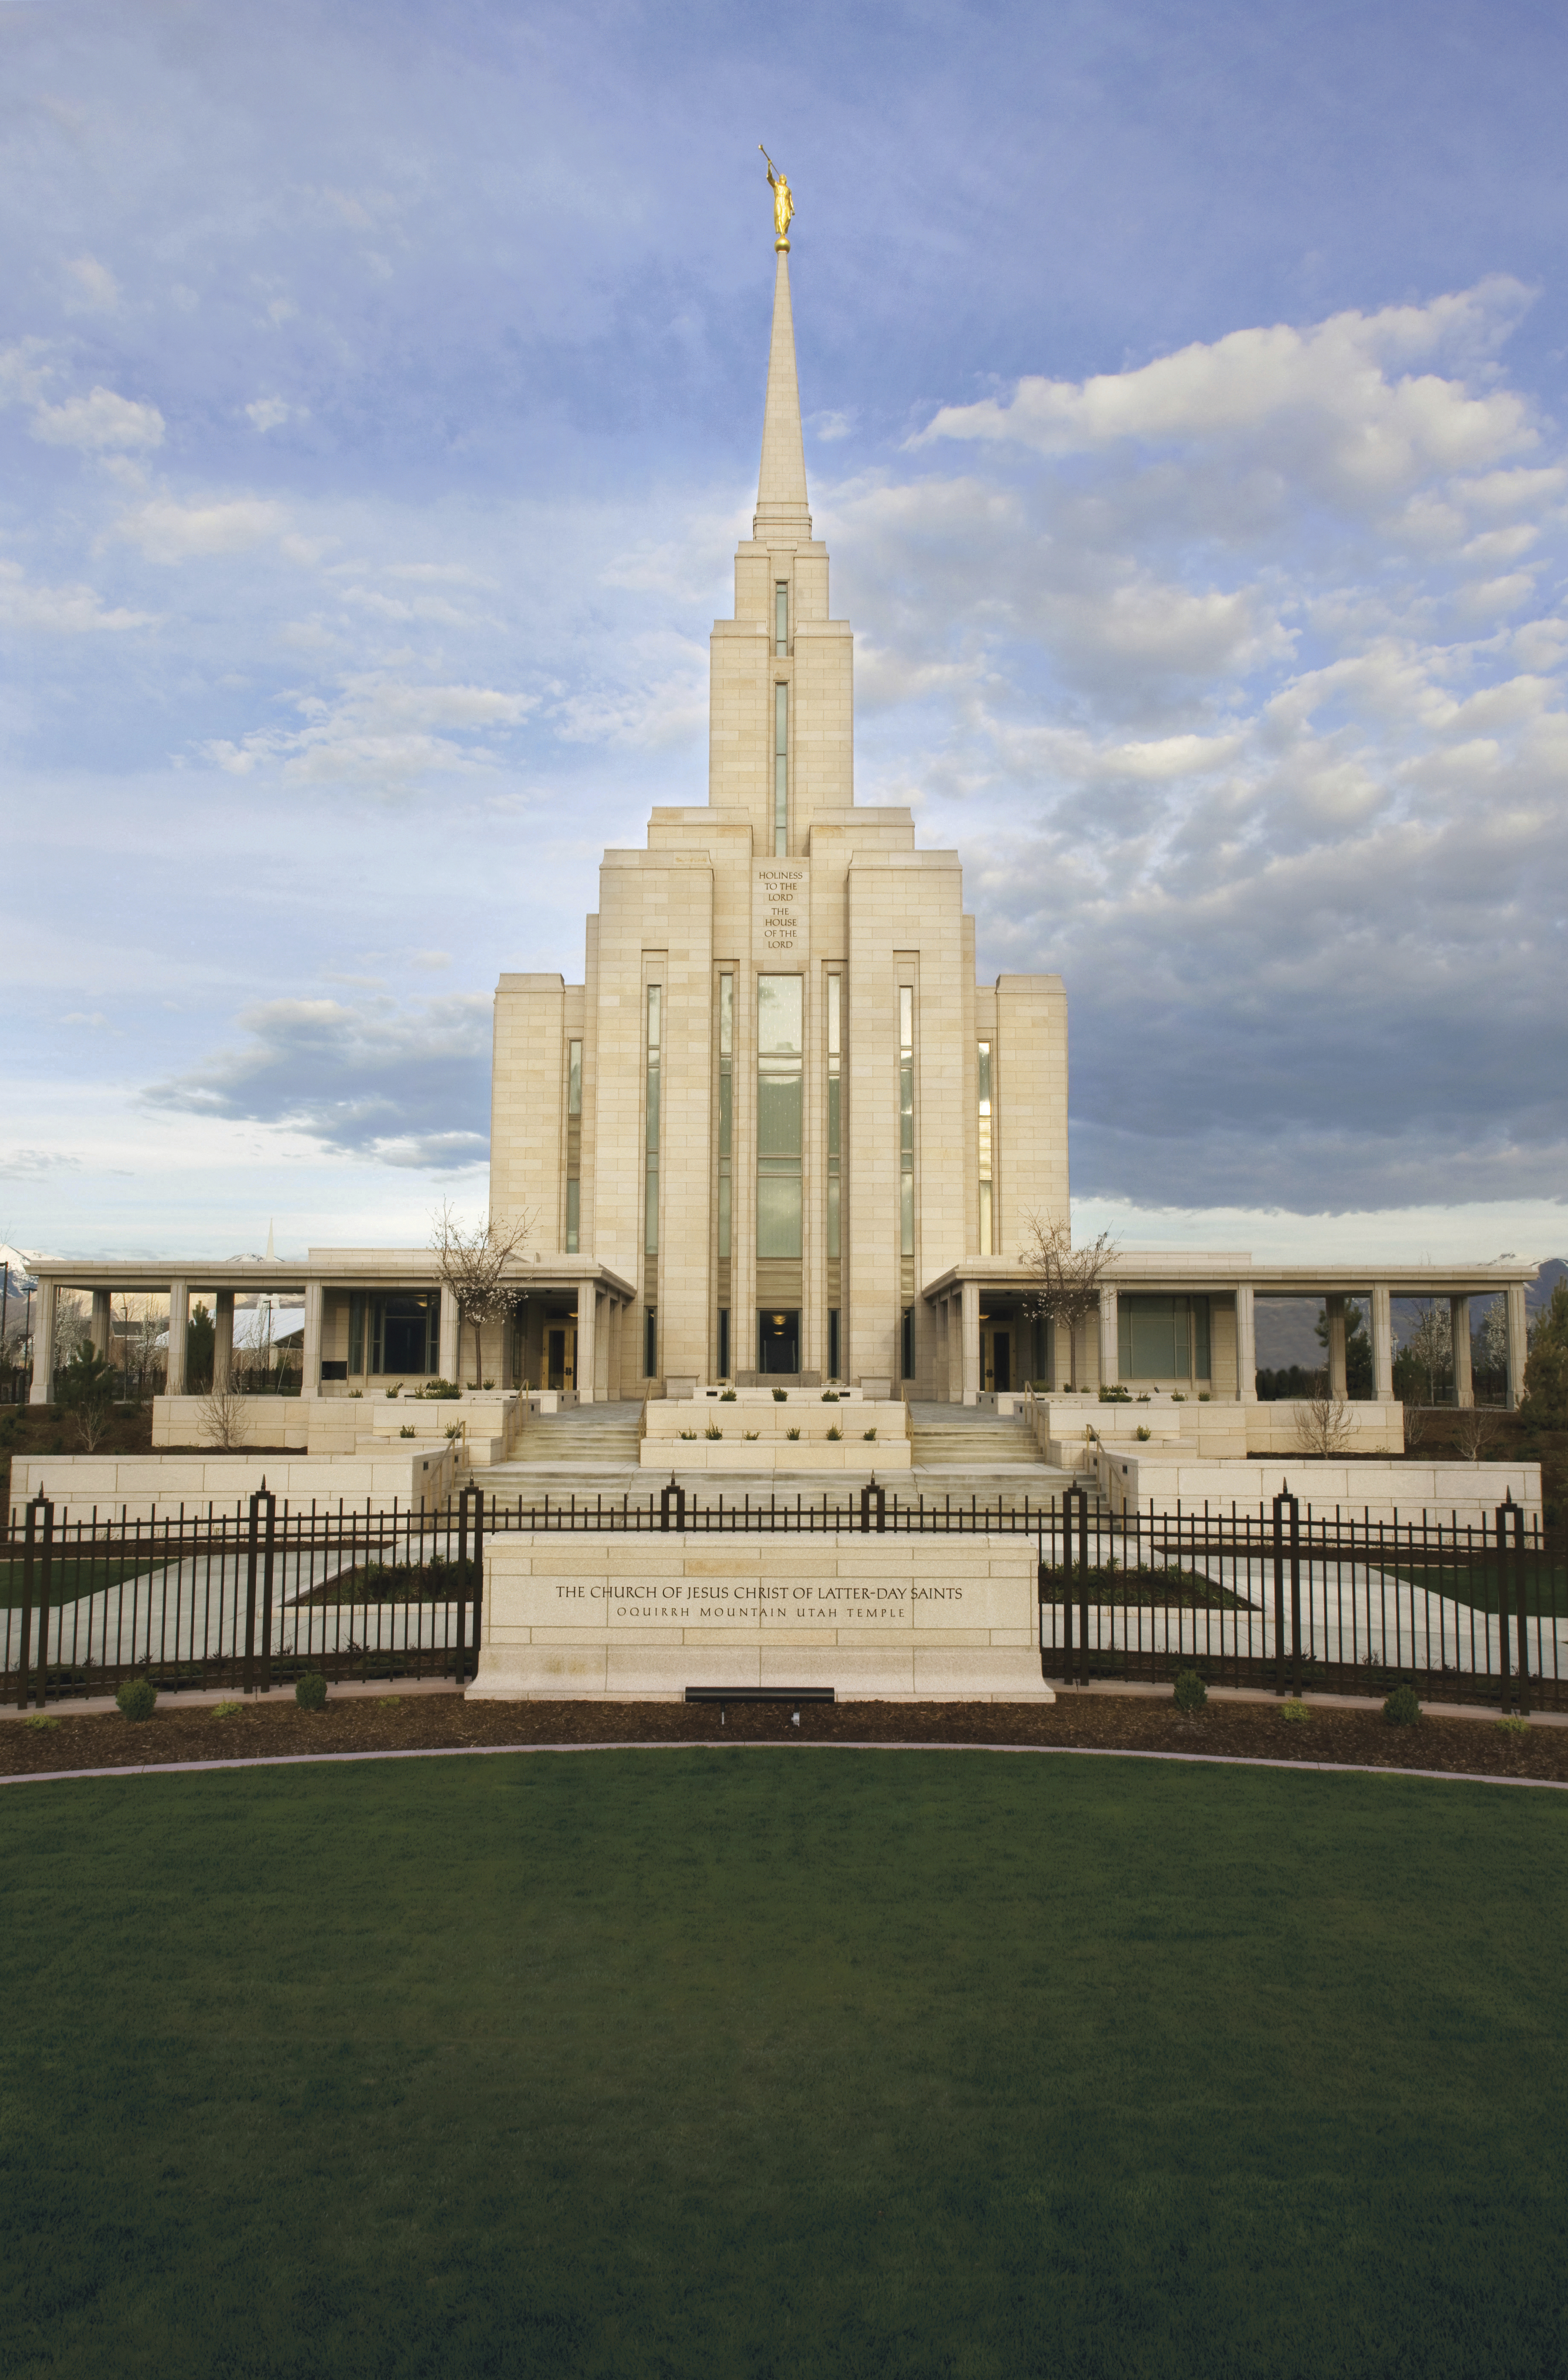 The Oquirrh Mountain Utah Temple, including name sign and entrance.